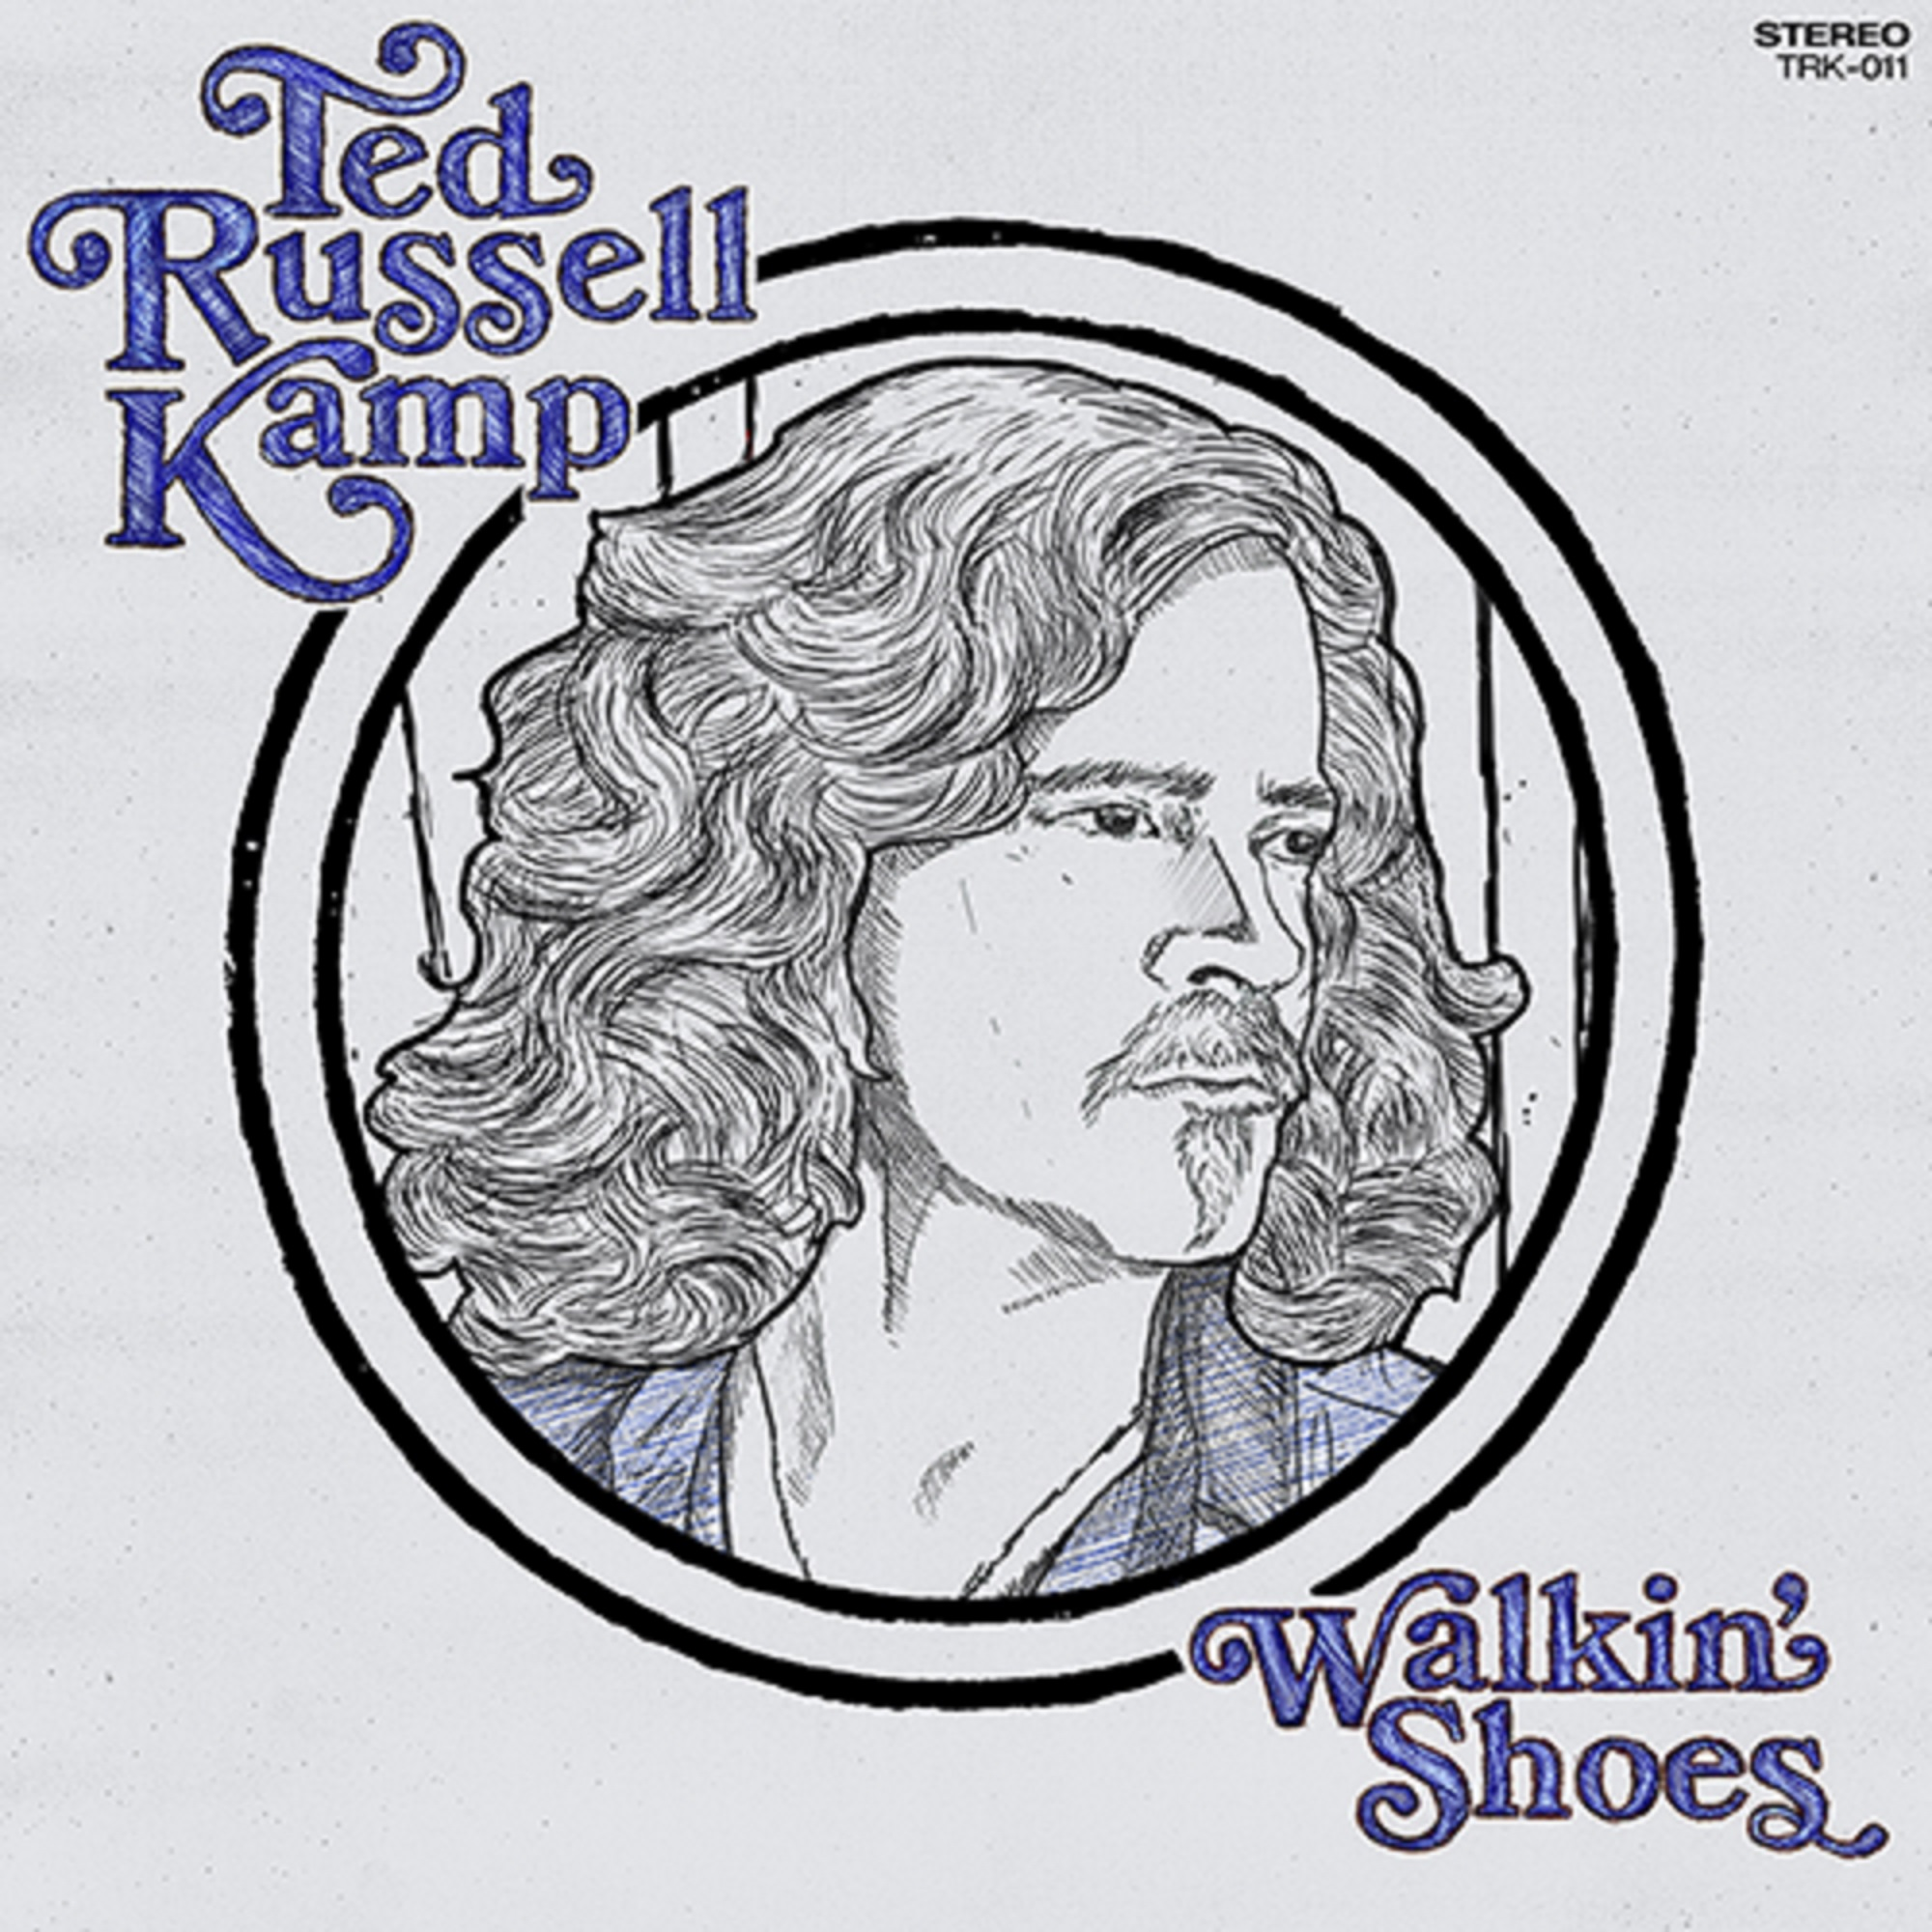 Ted Russell Kamp New Album 'Walking Shoes'